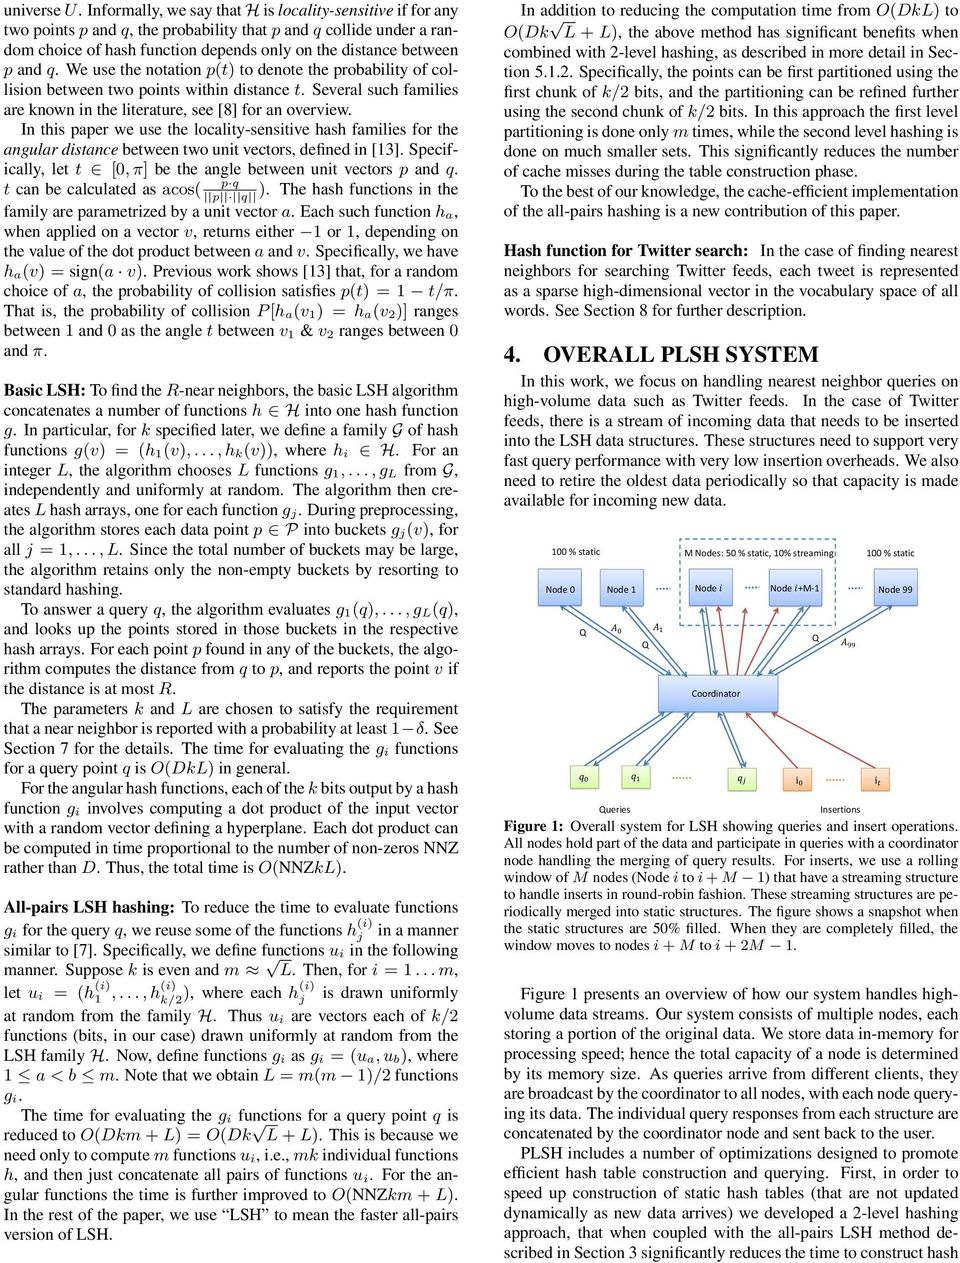 We use the notation p(t) to denote the probability of collision between two points within distance t. Several such families are known in the literature, see [8] for an overview.